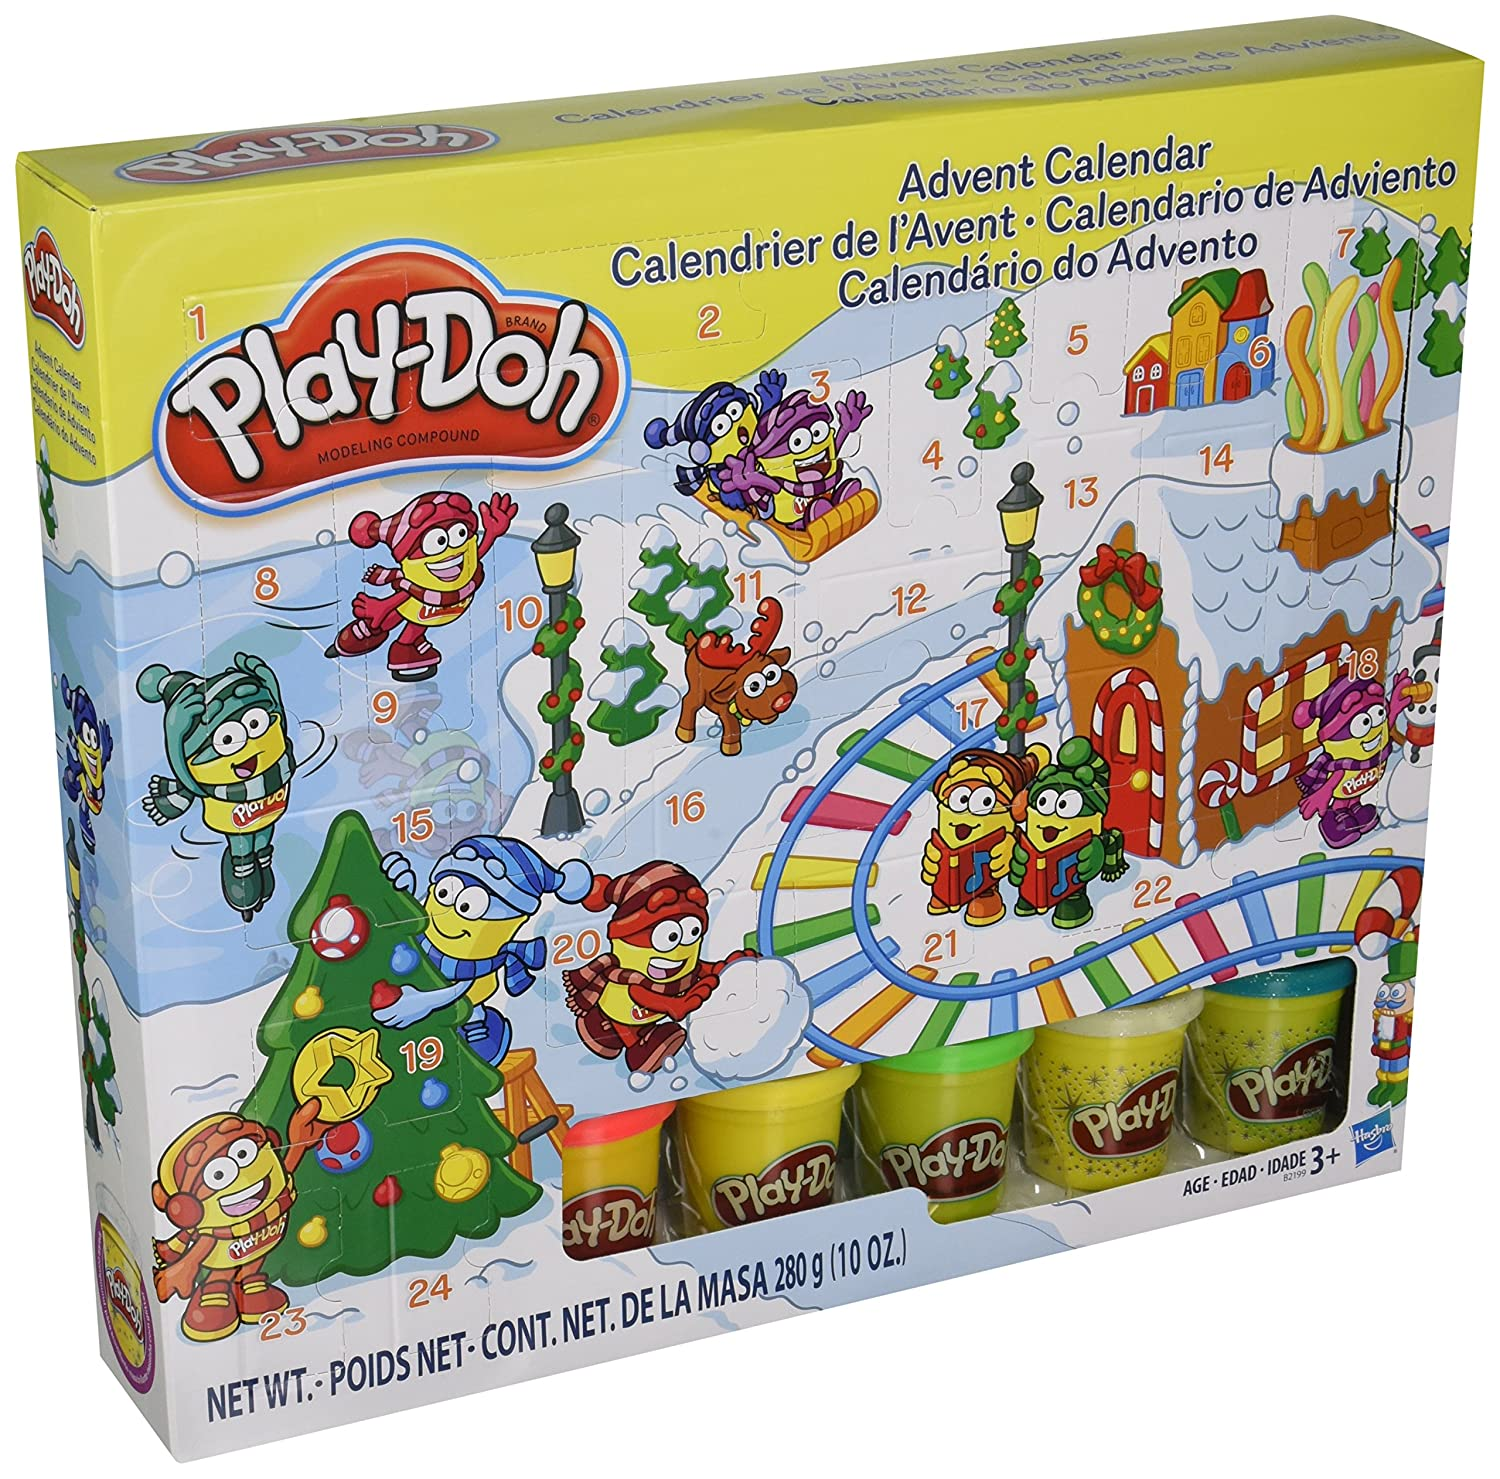 Play-Doh Advent Calendar Toy Kids